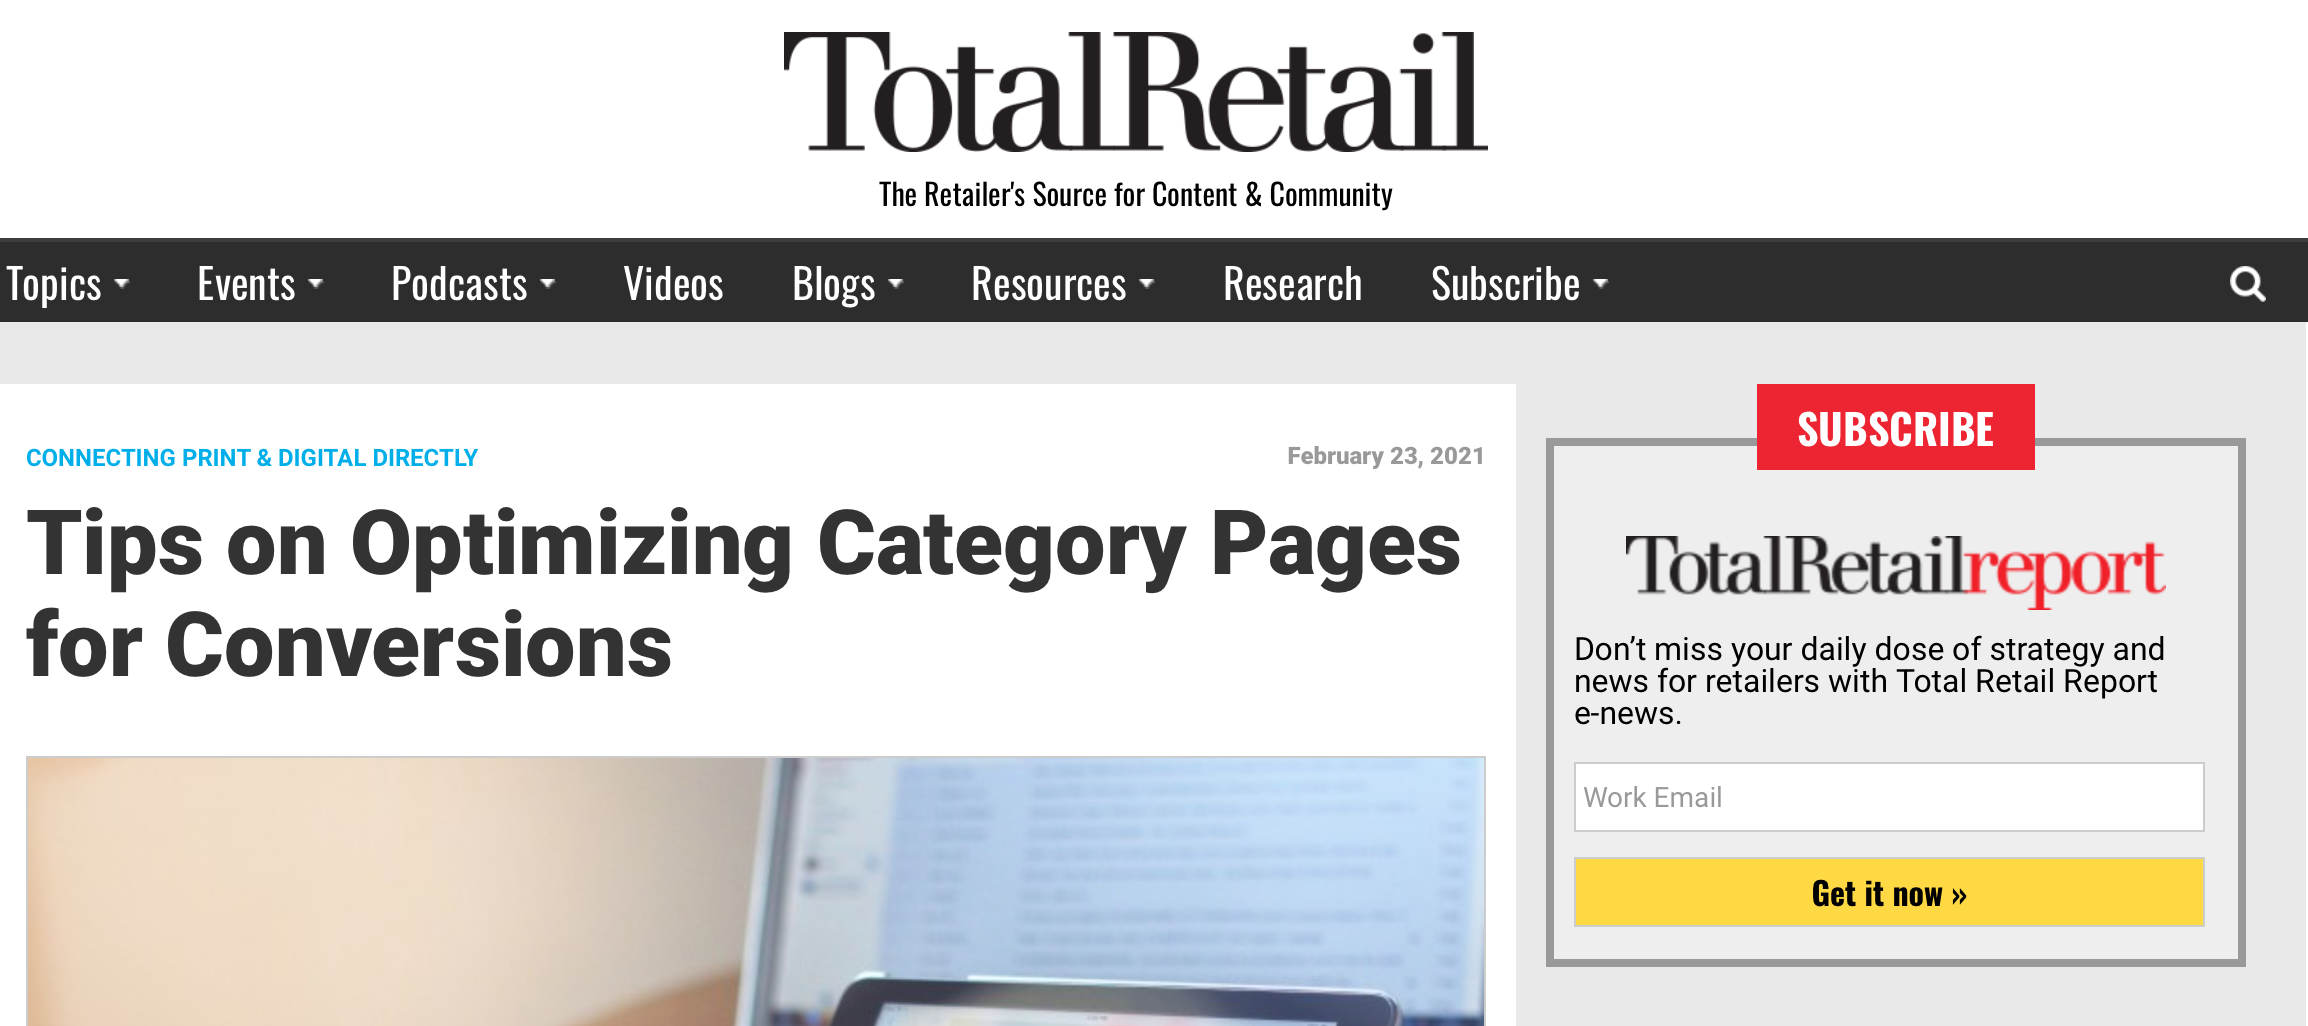 Tips on Optimizing Category Pages for Conversions